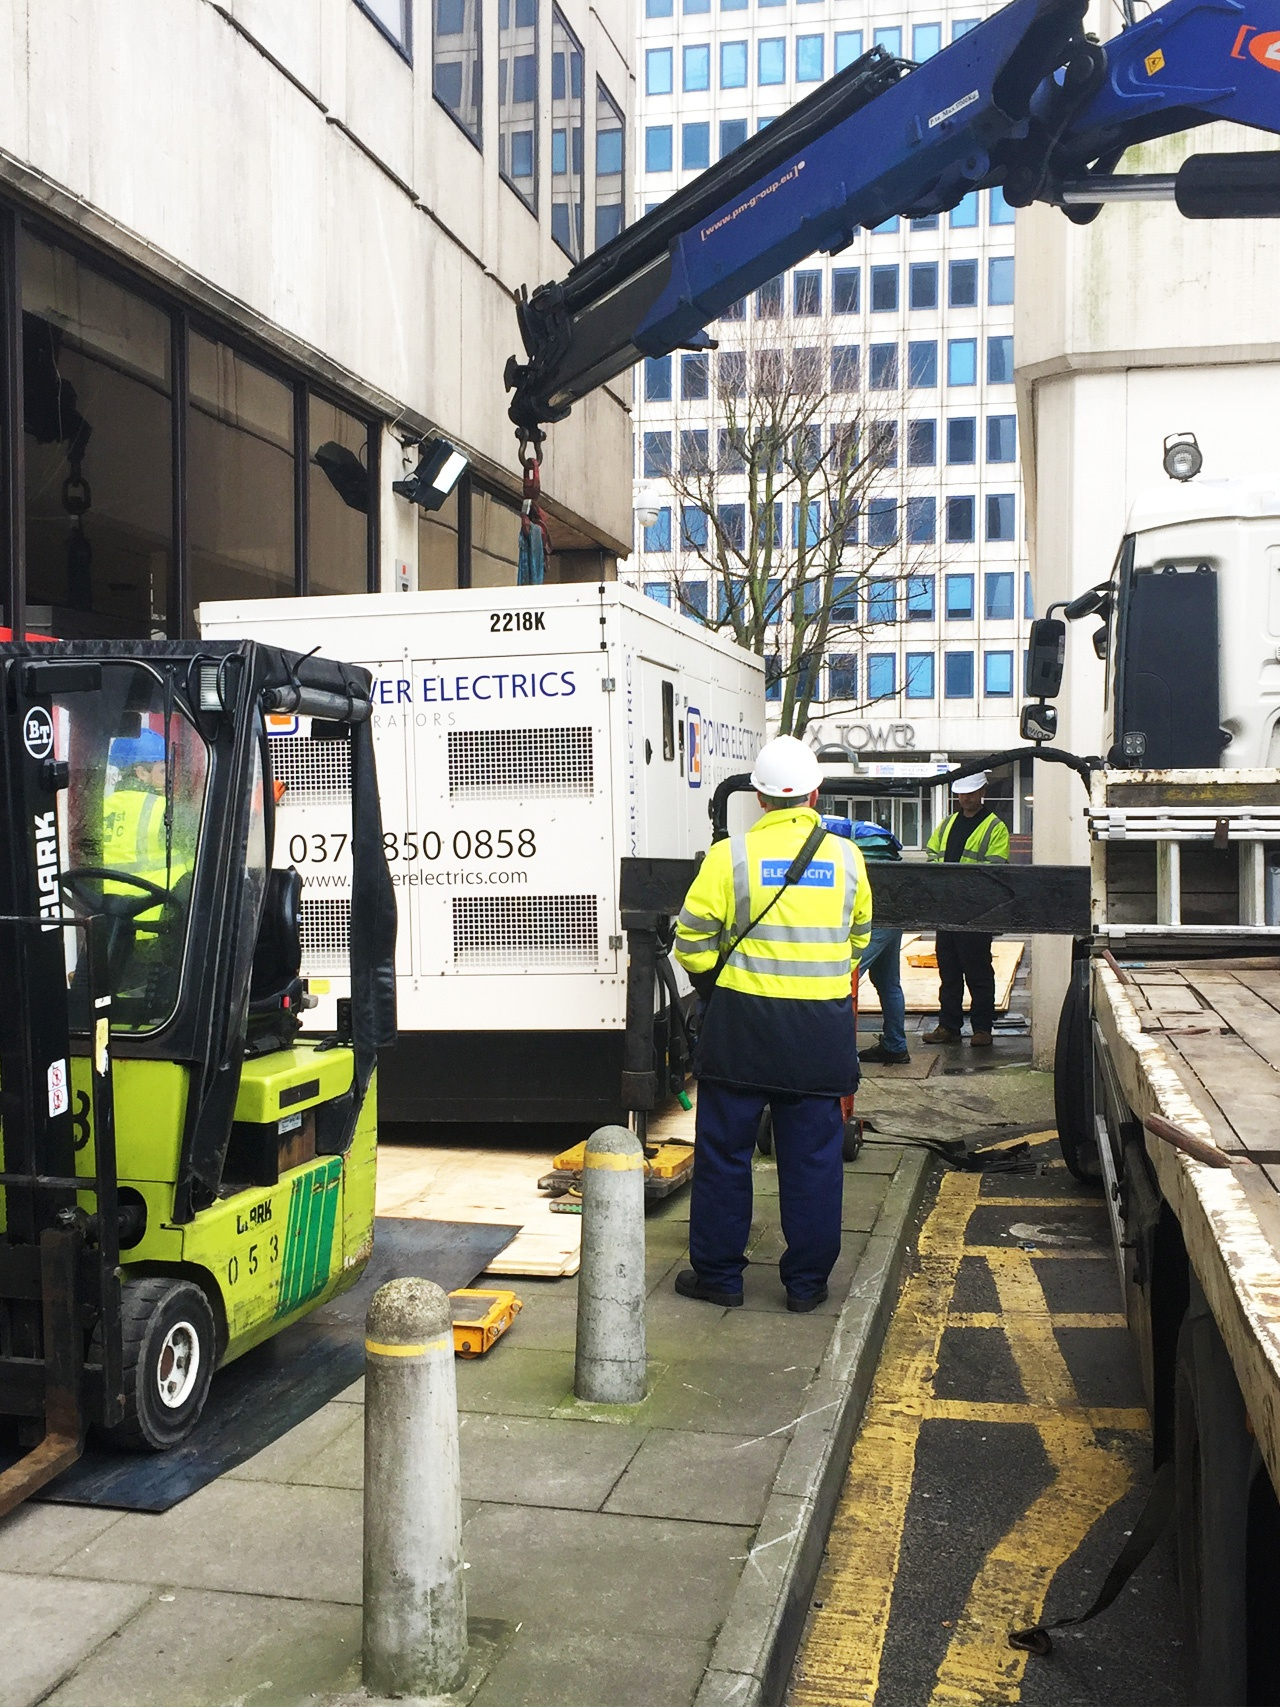 Pic of the 1st Industrial team working on a plant movement job in London